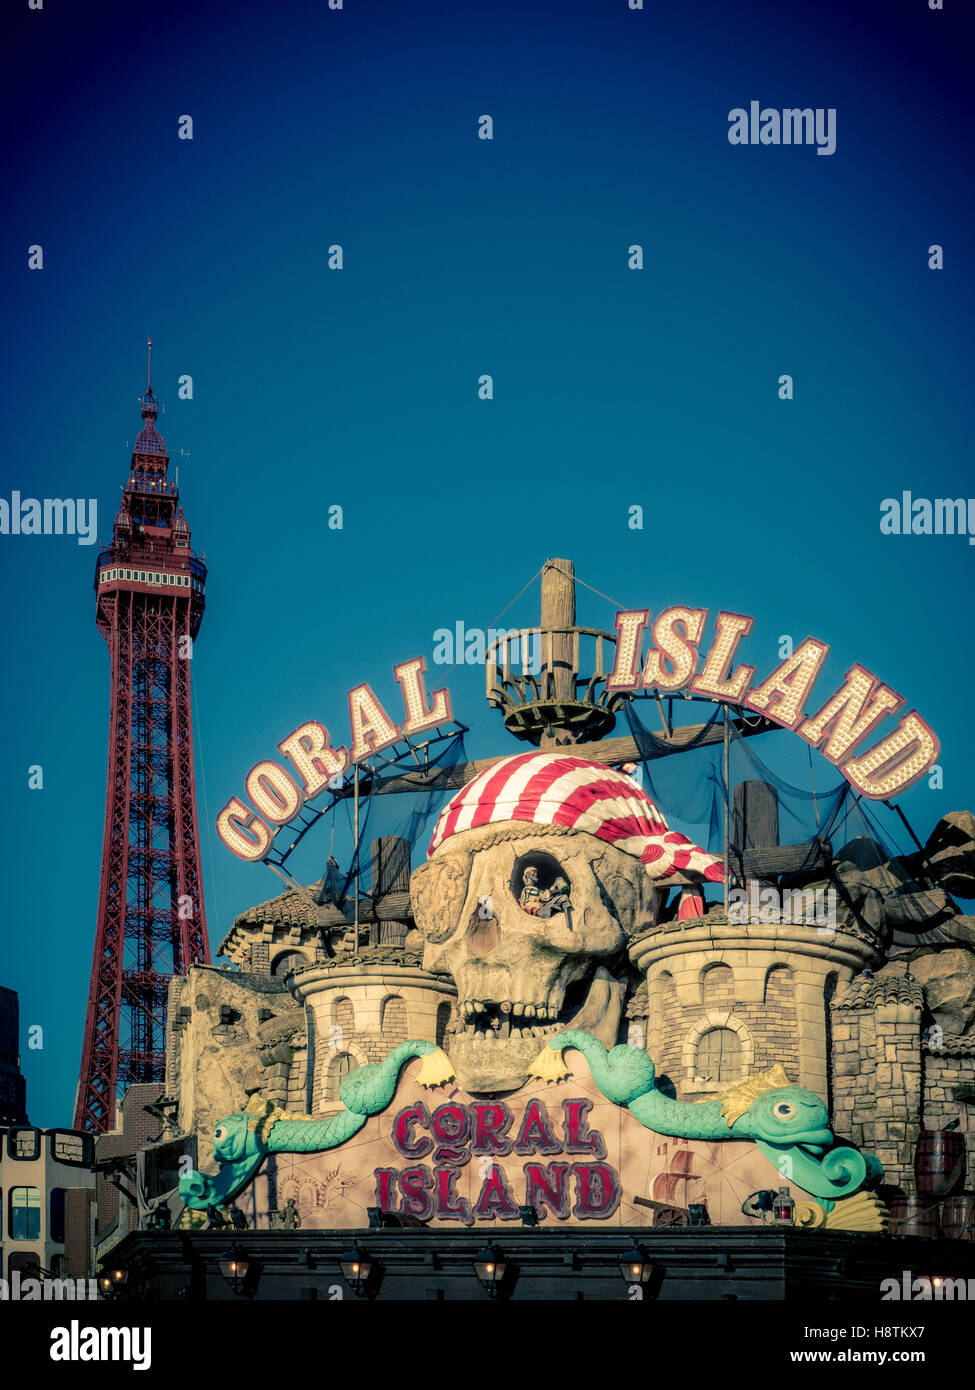 Coral Island Amusement Arcade sign on seafront, Blackpool, Lancashire, UK. - Stock Image